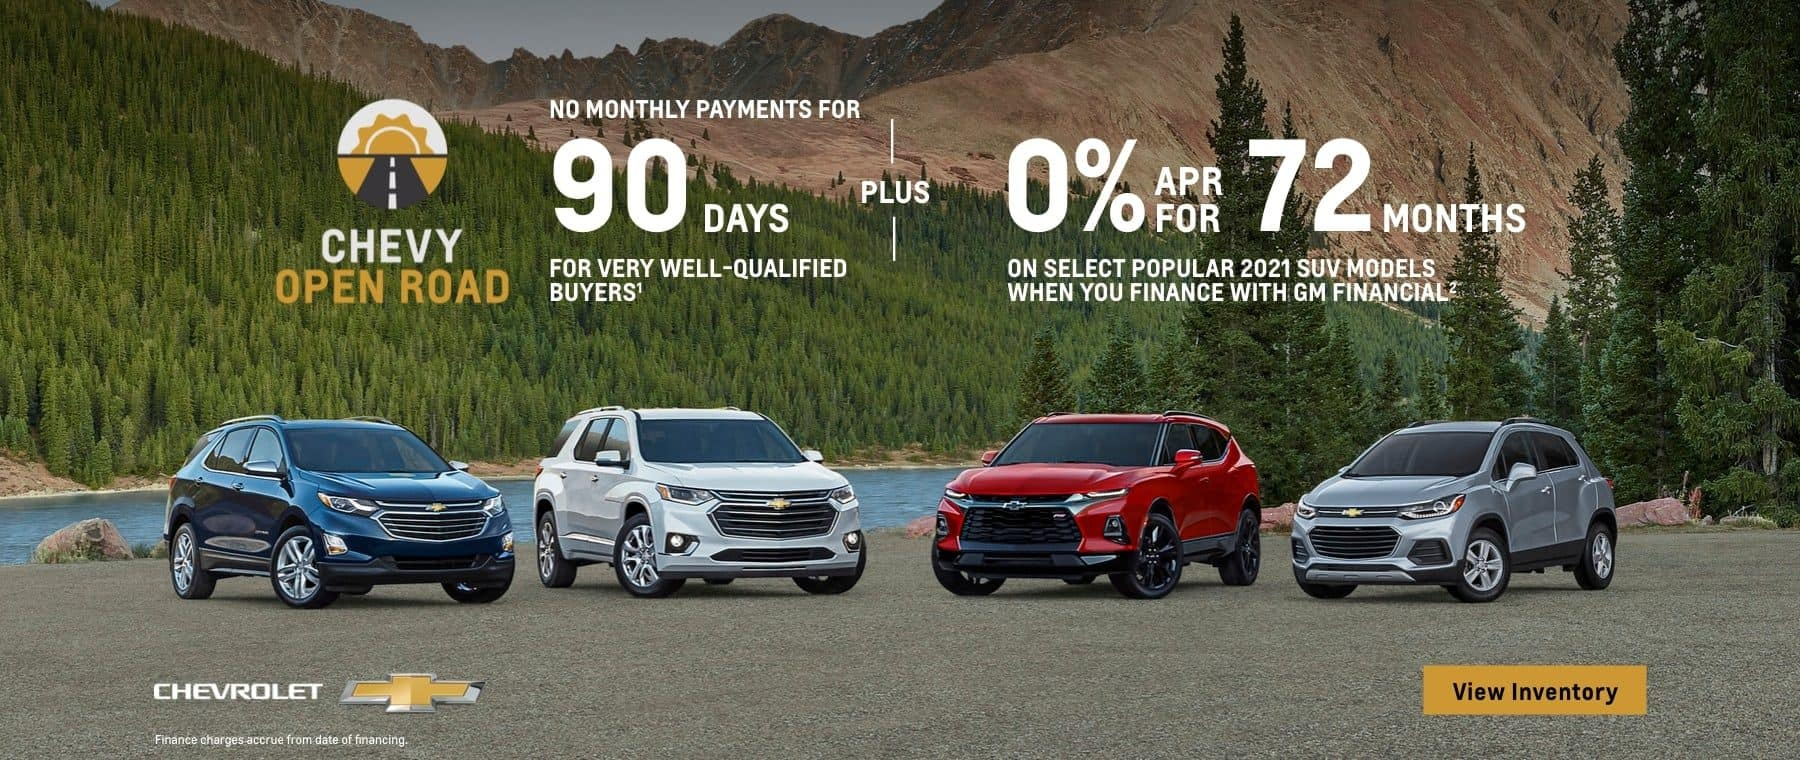 Chevy Open Road. For very well-qualified buyers no monthly payments for 90 days. Plus, 0% APR for 72 months on select popular SUV models when you finance with GM Financial.